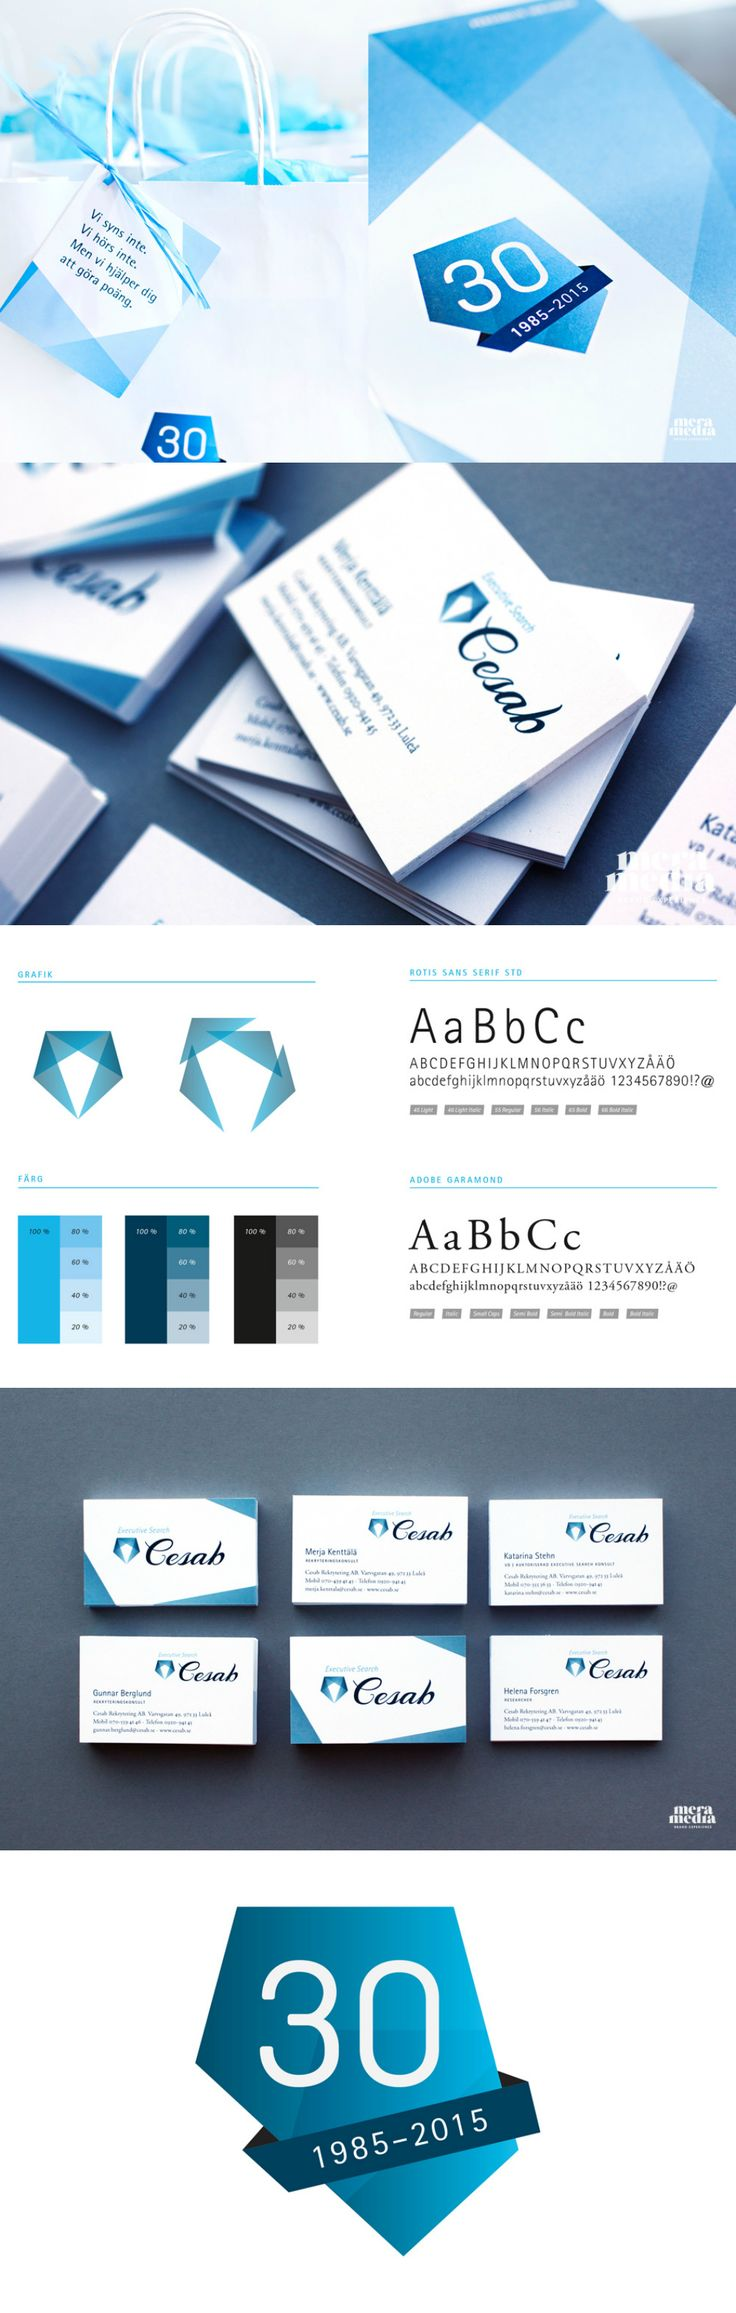 Blue and grey graphic art profile. A website, business cards and profile material have all been redesigned for Cesab.